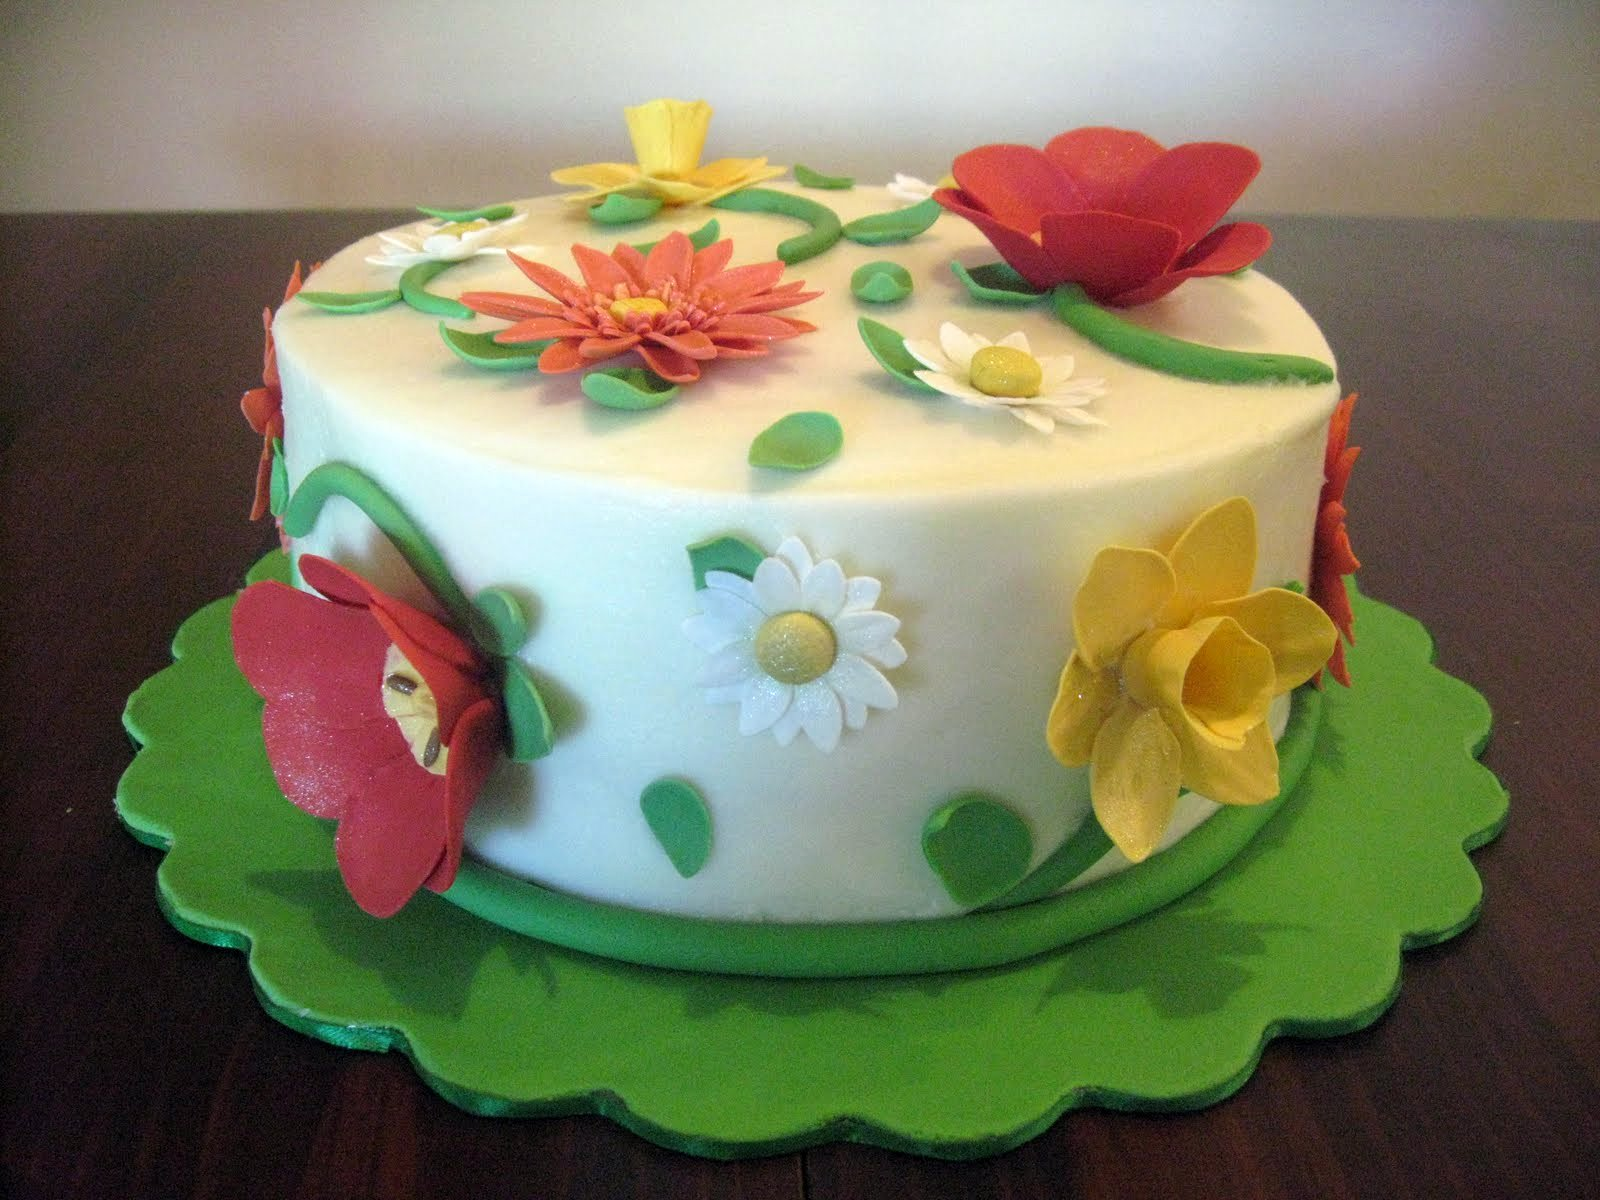 Stuff by stace spring flowers birthday cake to throw a stick of salted butter in my buttercream to tone down the sweetness a bit there are more cakes in the future so i will try that next time izmirmasajfo Choice Image